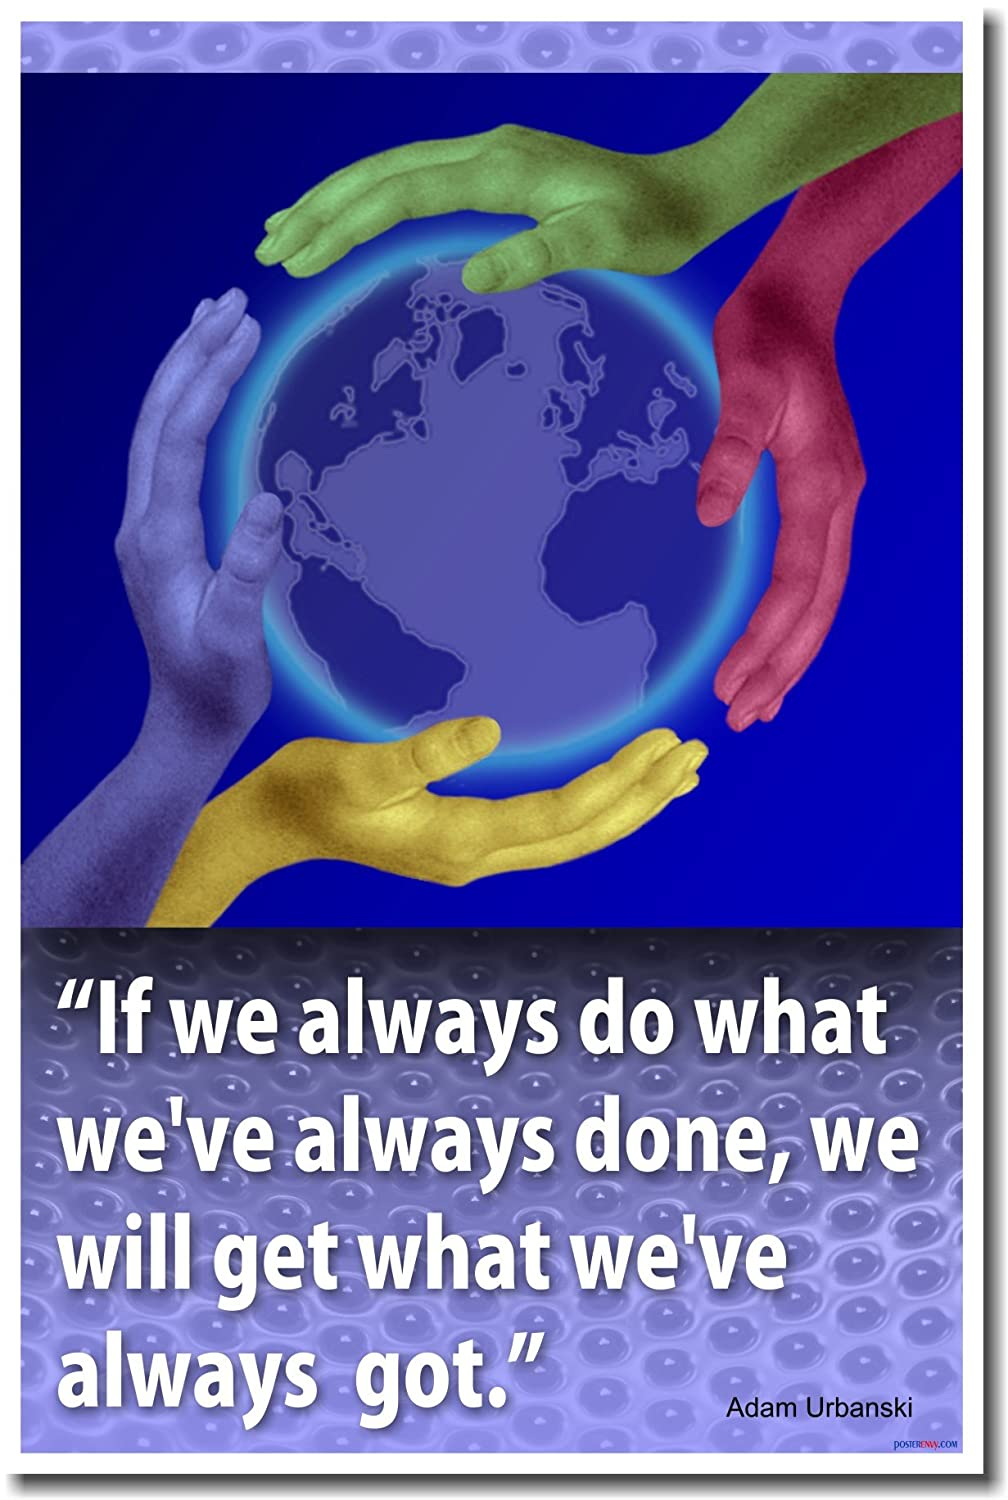 If We Always Do What We Have Always Done Then We Will Always Get What We've Always Got